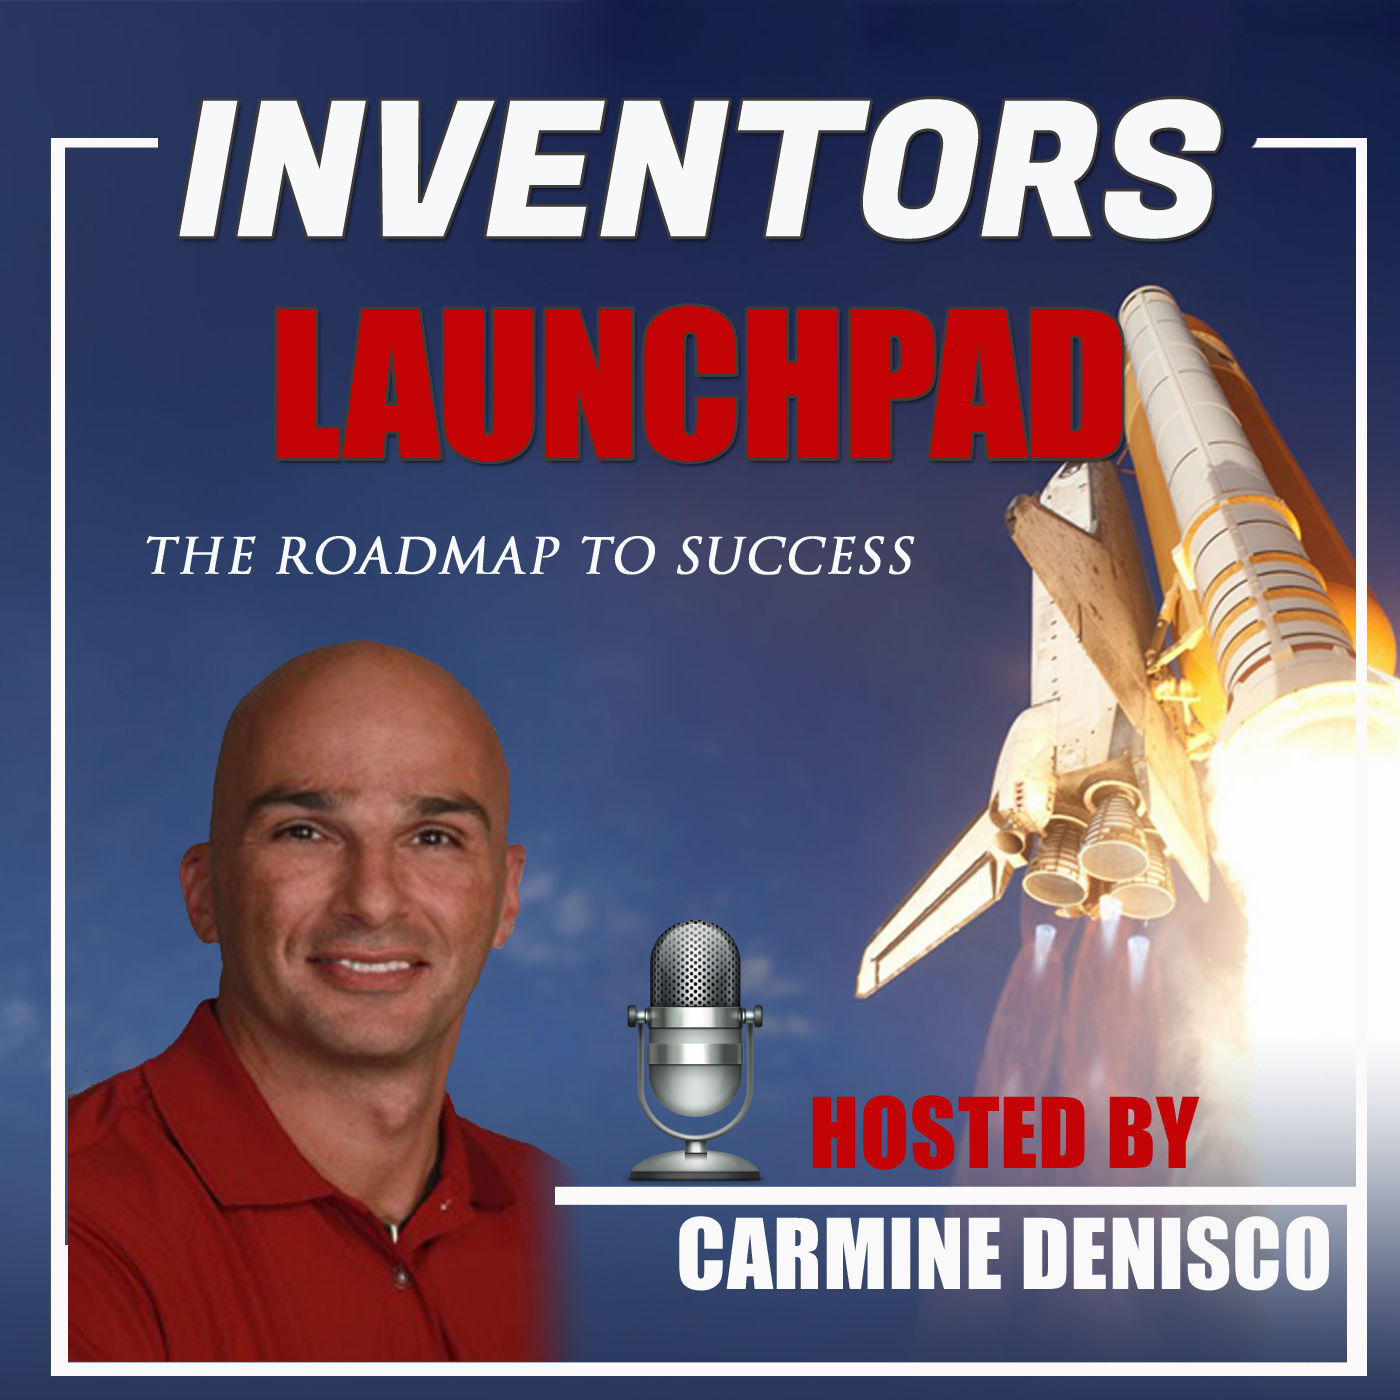 Artwork for S2e28 – Andrew Krauss is a Licensing Expert with his Partner Stephen Key Their Company Inventright has helped hundreds of Inventors